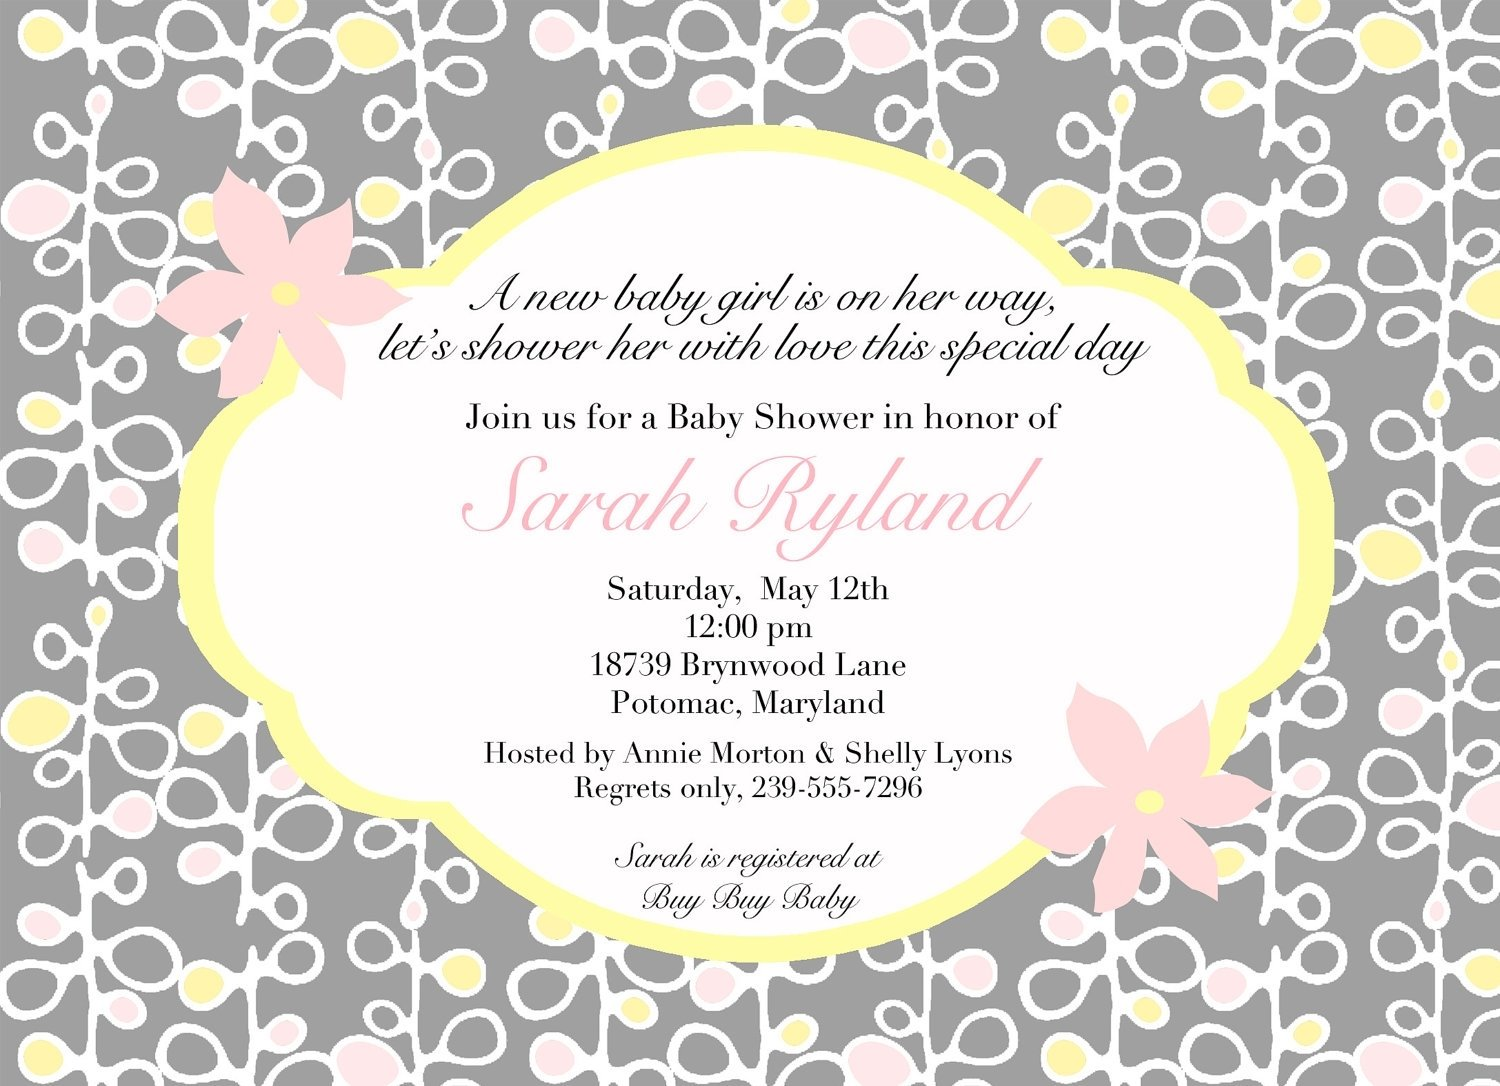 10 Attractive Invitation Ideas For Baby Shower marvelous baby shower invitations wording which you need to make 2020